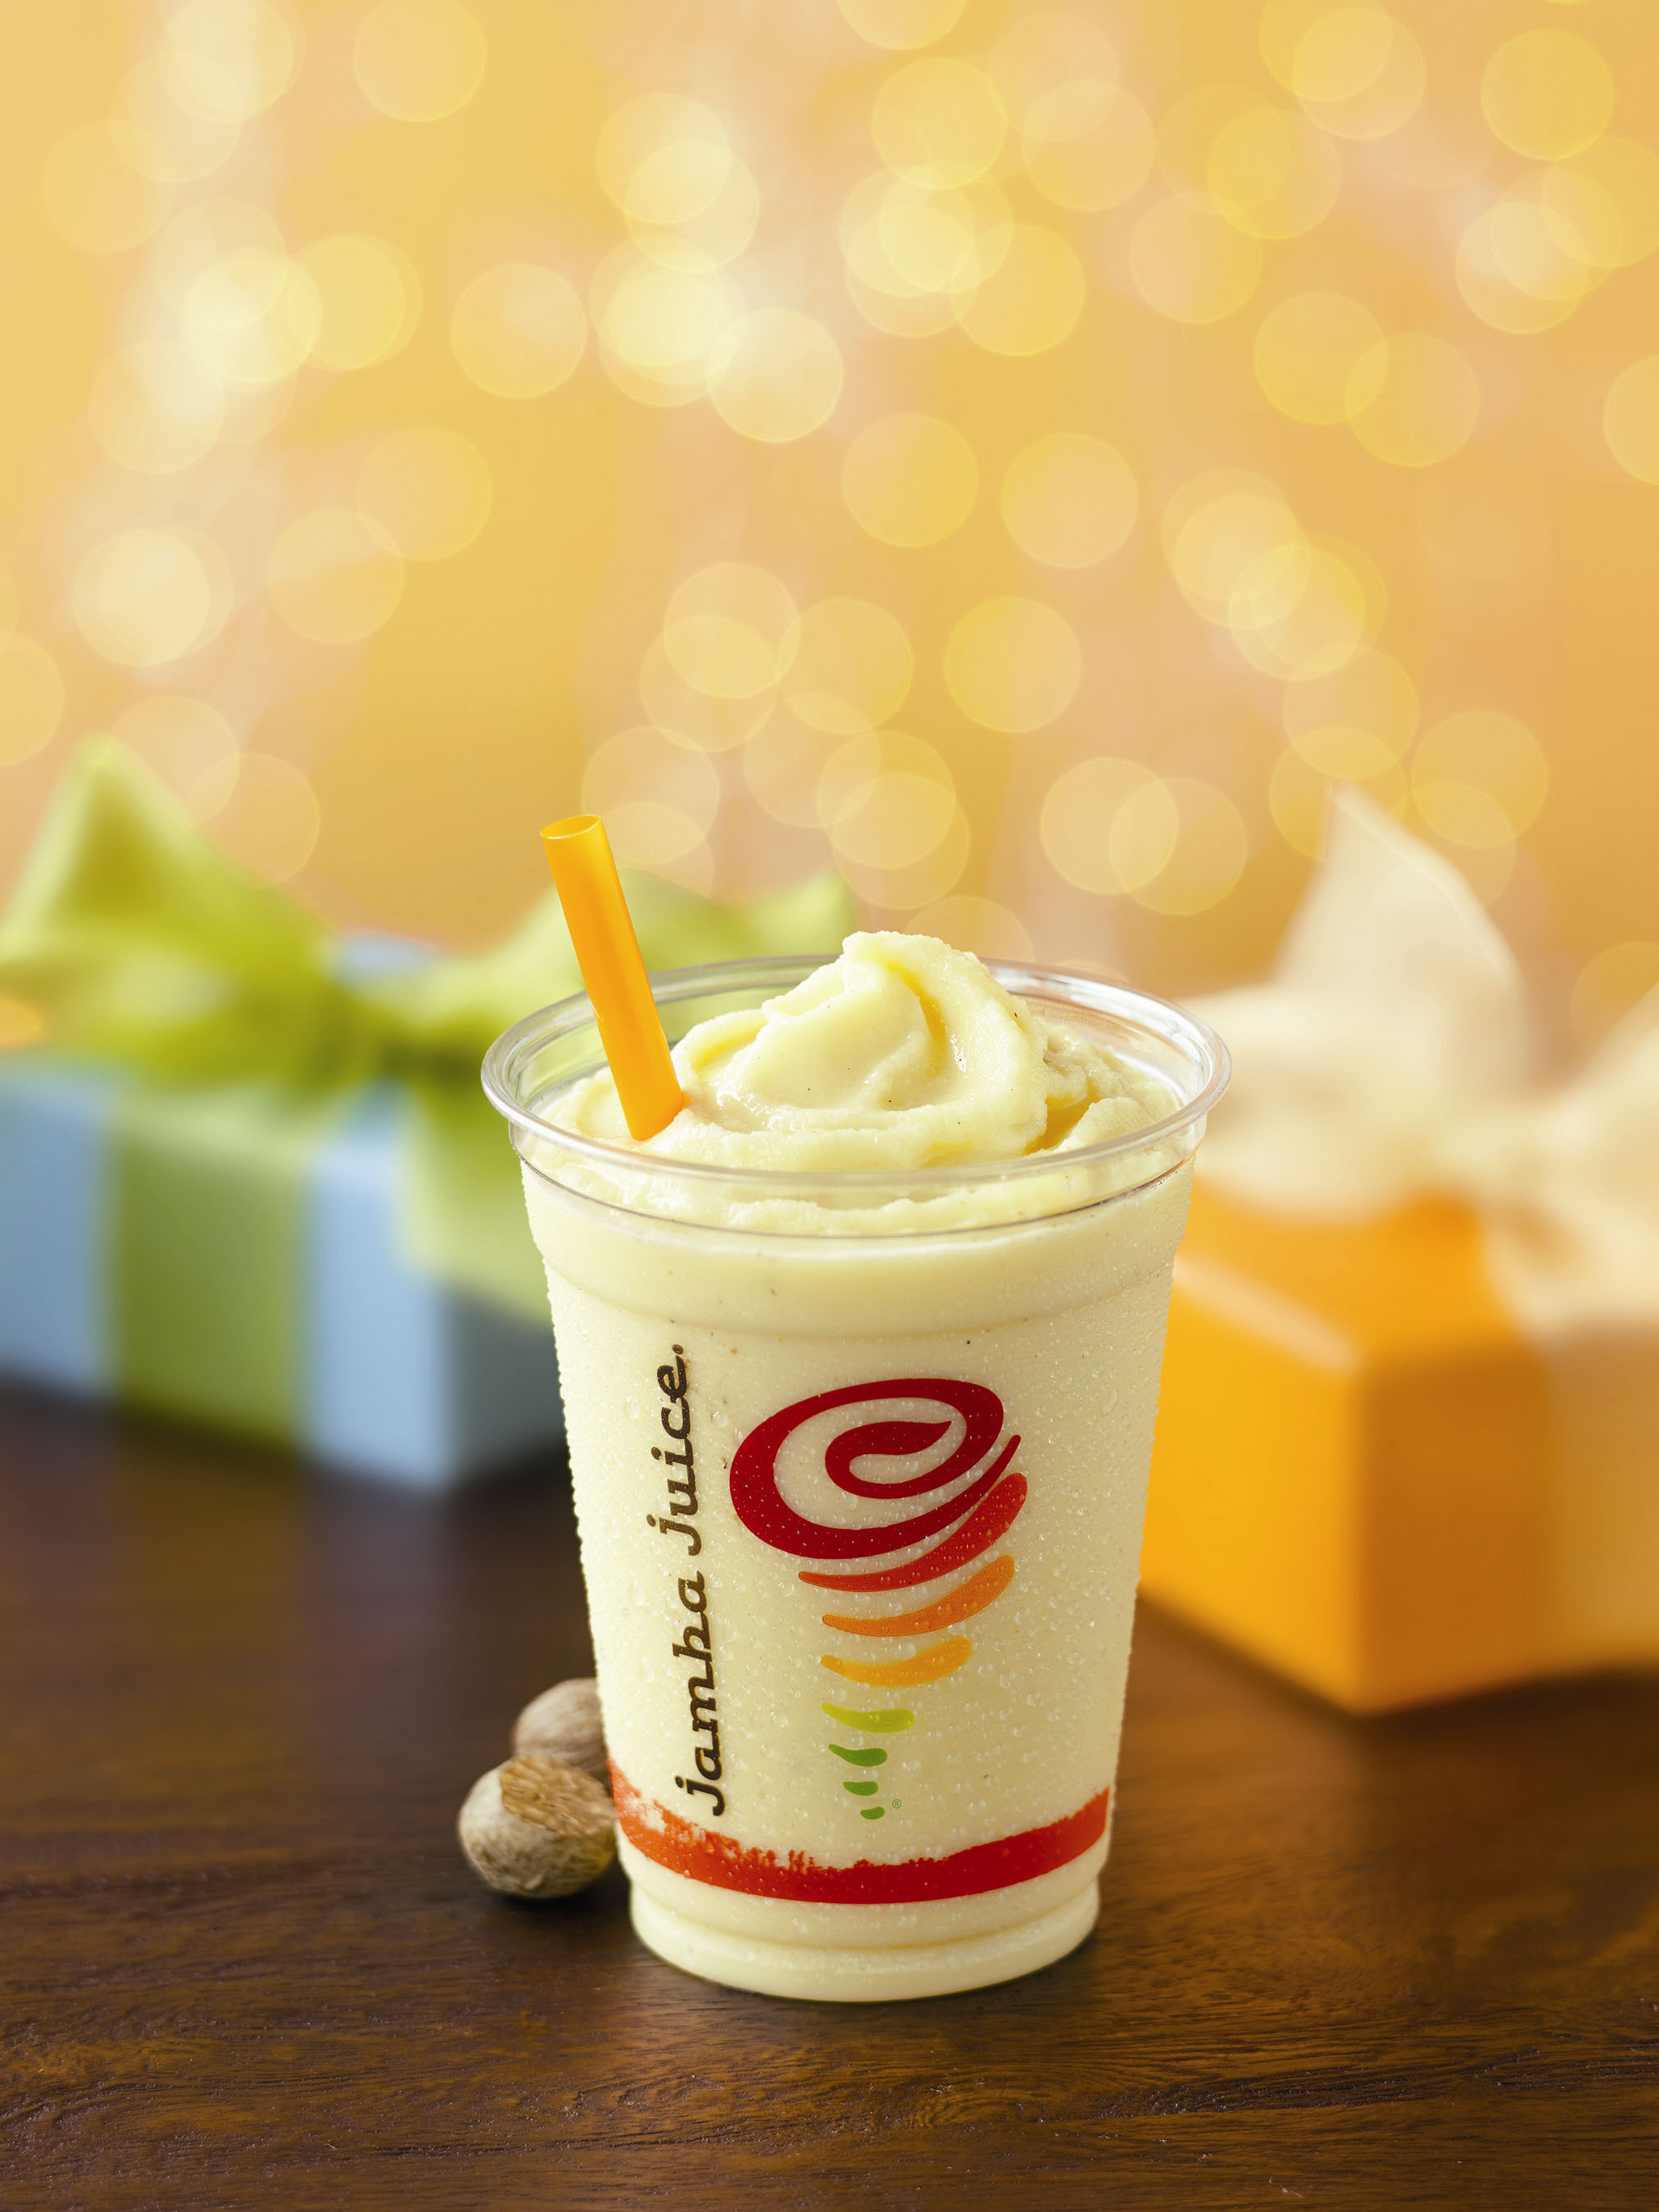 Jamba Juice celebrates the 2013 Holiday Season with the return of Eggnog Jubilee--made with classic spices and flavors to create a delicious drink reminiscent of the tastiest eggnog--available for a limited time only. (PRNewsFoto/Jamba Juice Company) (PRNewsFoto/JAMBA JUICE COMPANY)